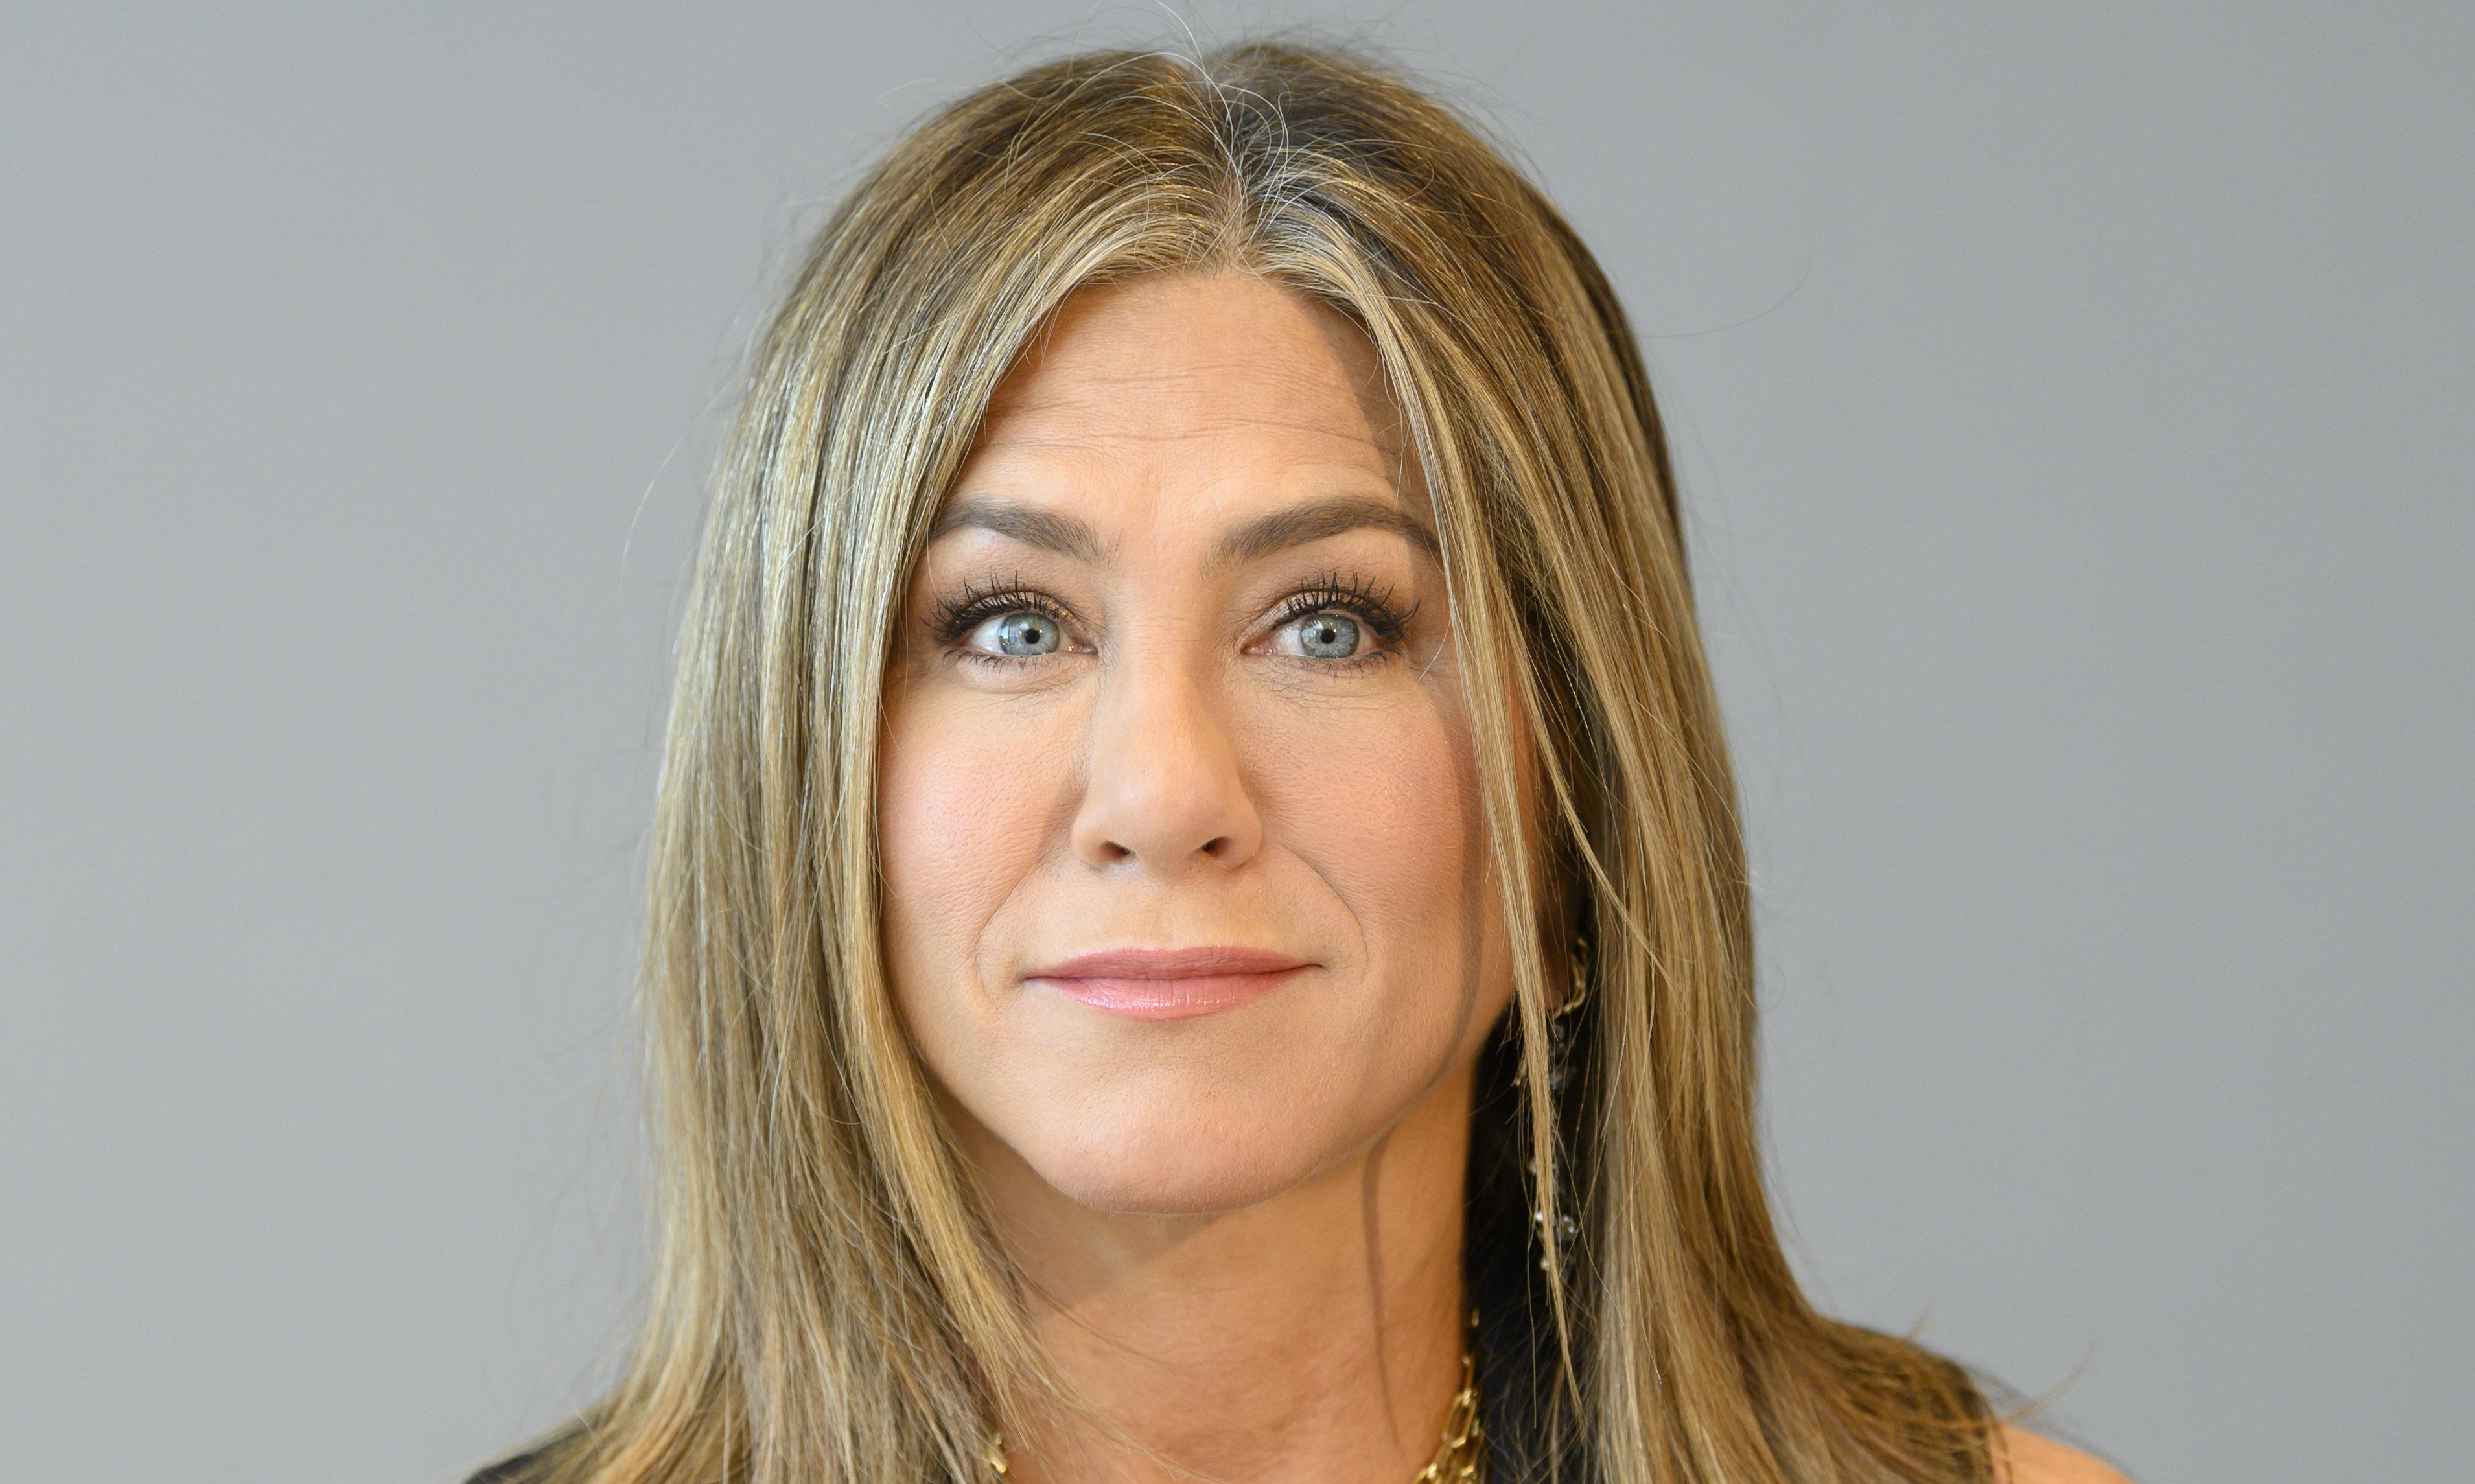 Jennifer Aniston's daily schedule: a 16-hour fast – and celery juice as a treat